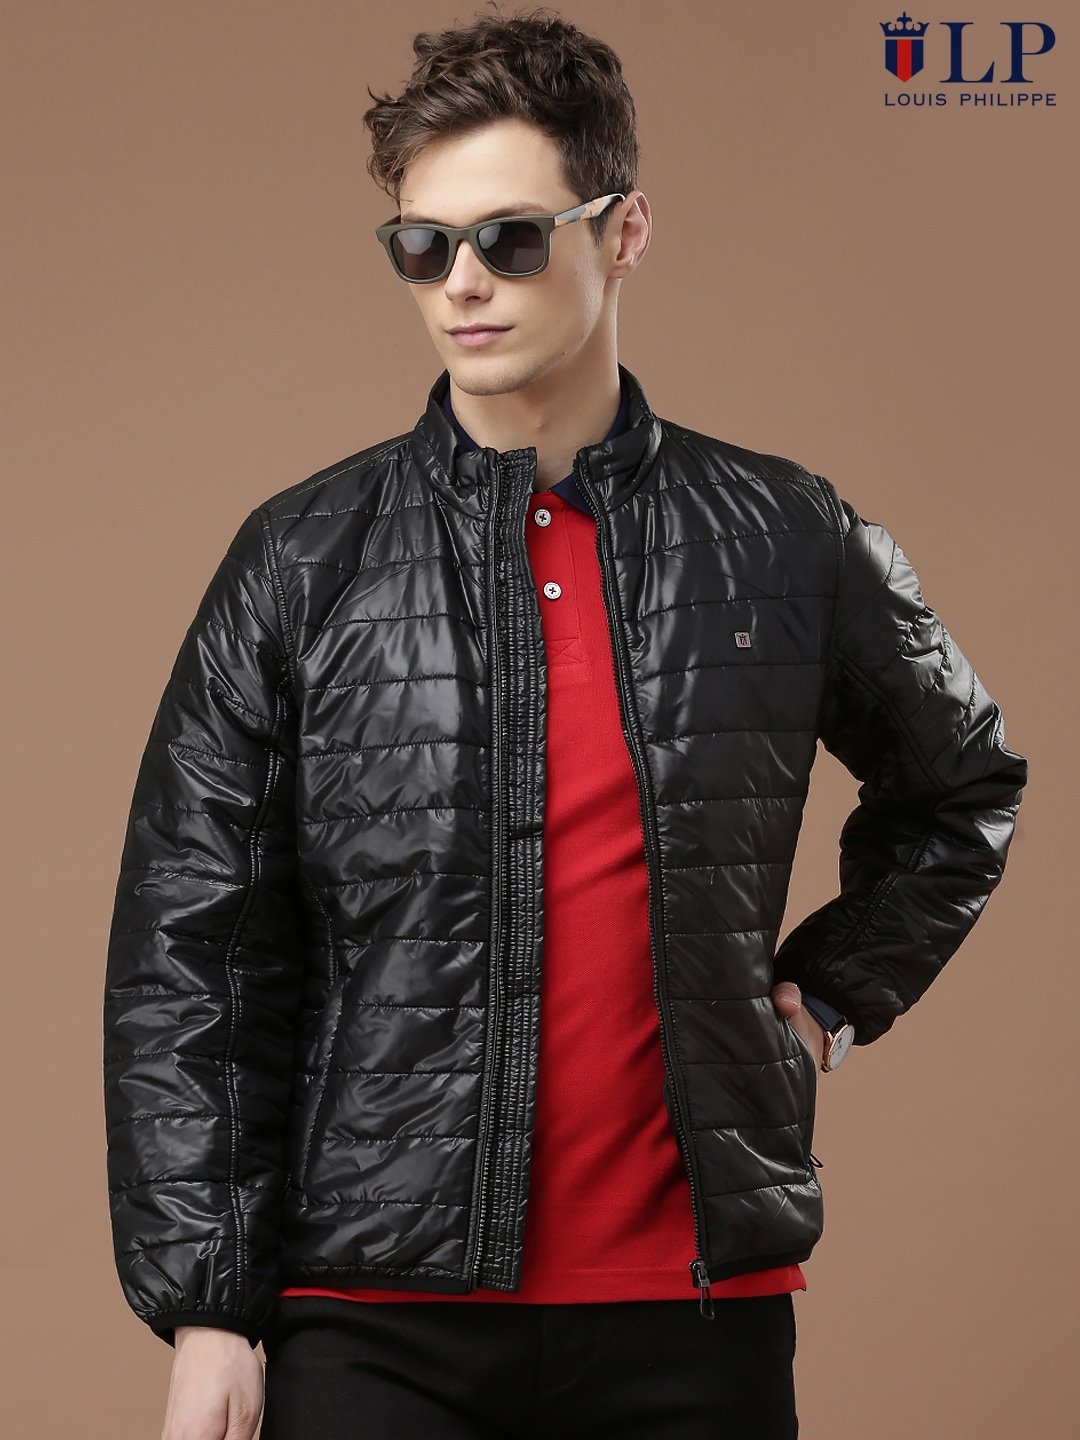 6fac72571bc Louis philippe lyow516s03290 Sport Black Quilted Jacket - Best Price ...